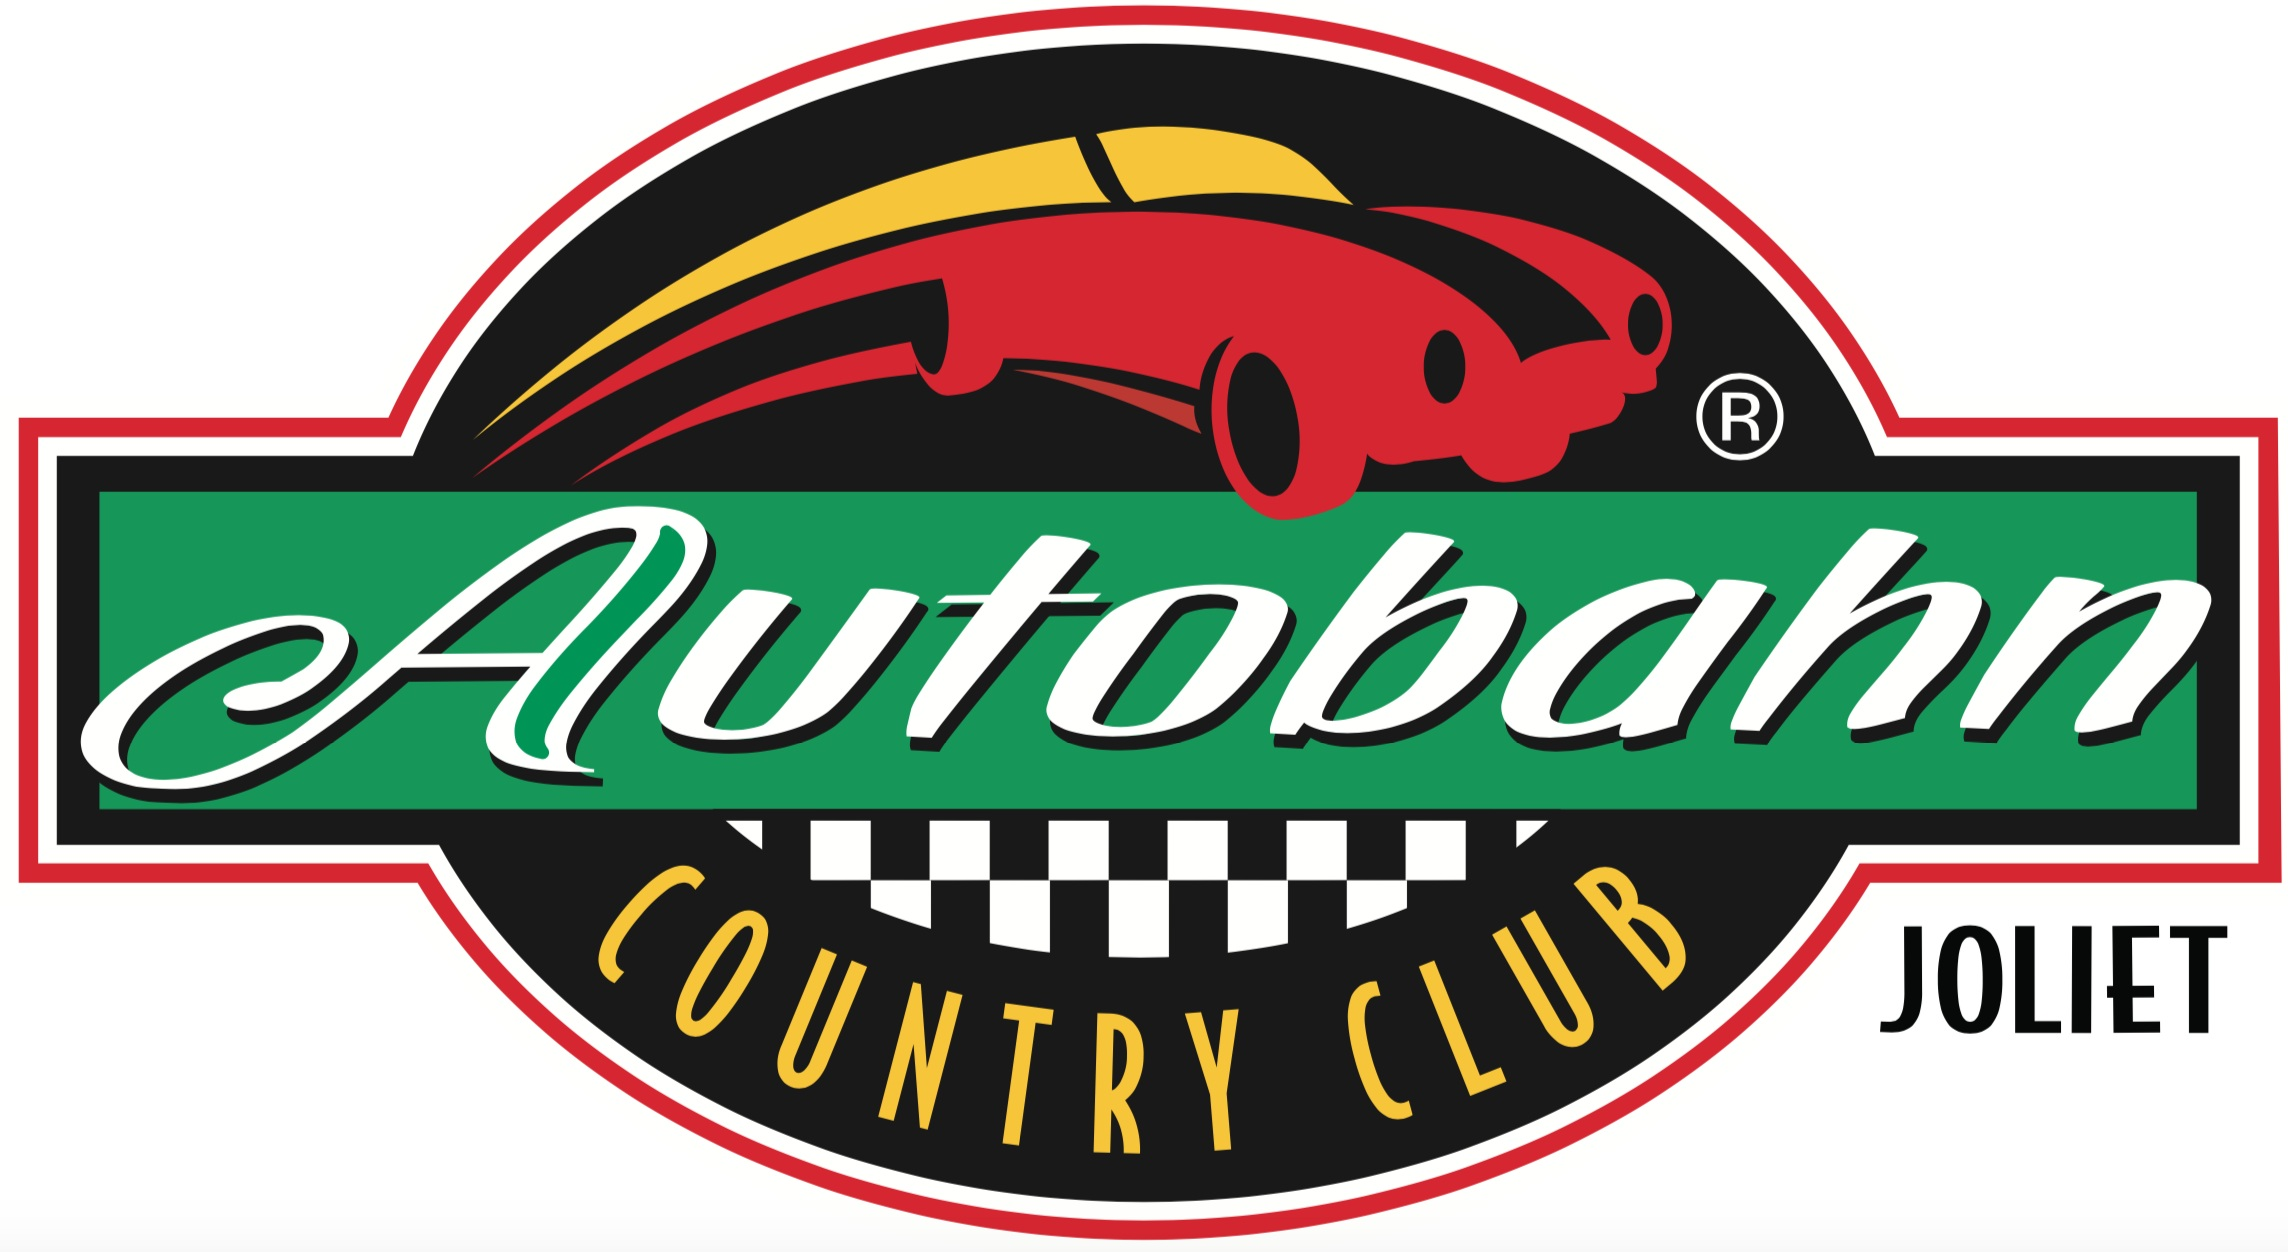 Autobahn Country Club is the Midwest's Premier Motorsports Club featuring Road Racing, Karting, Driver Training and a full featured Events Venue.